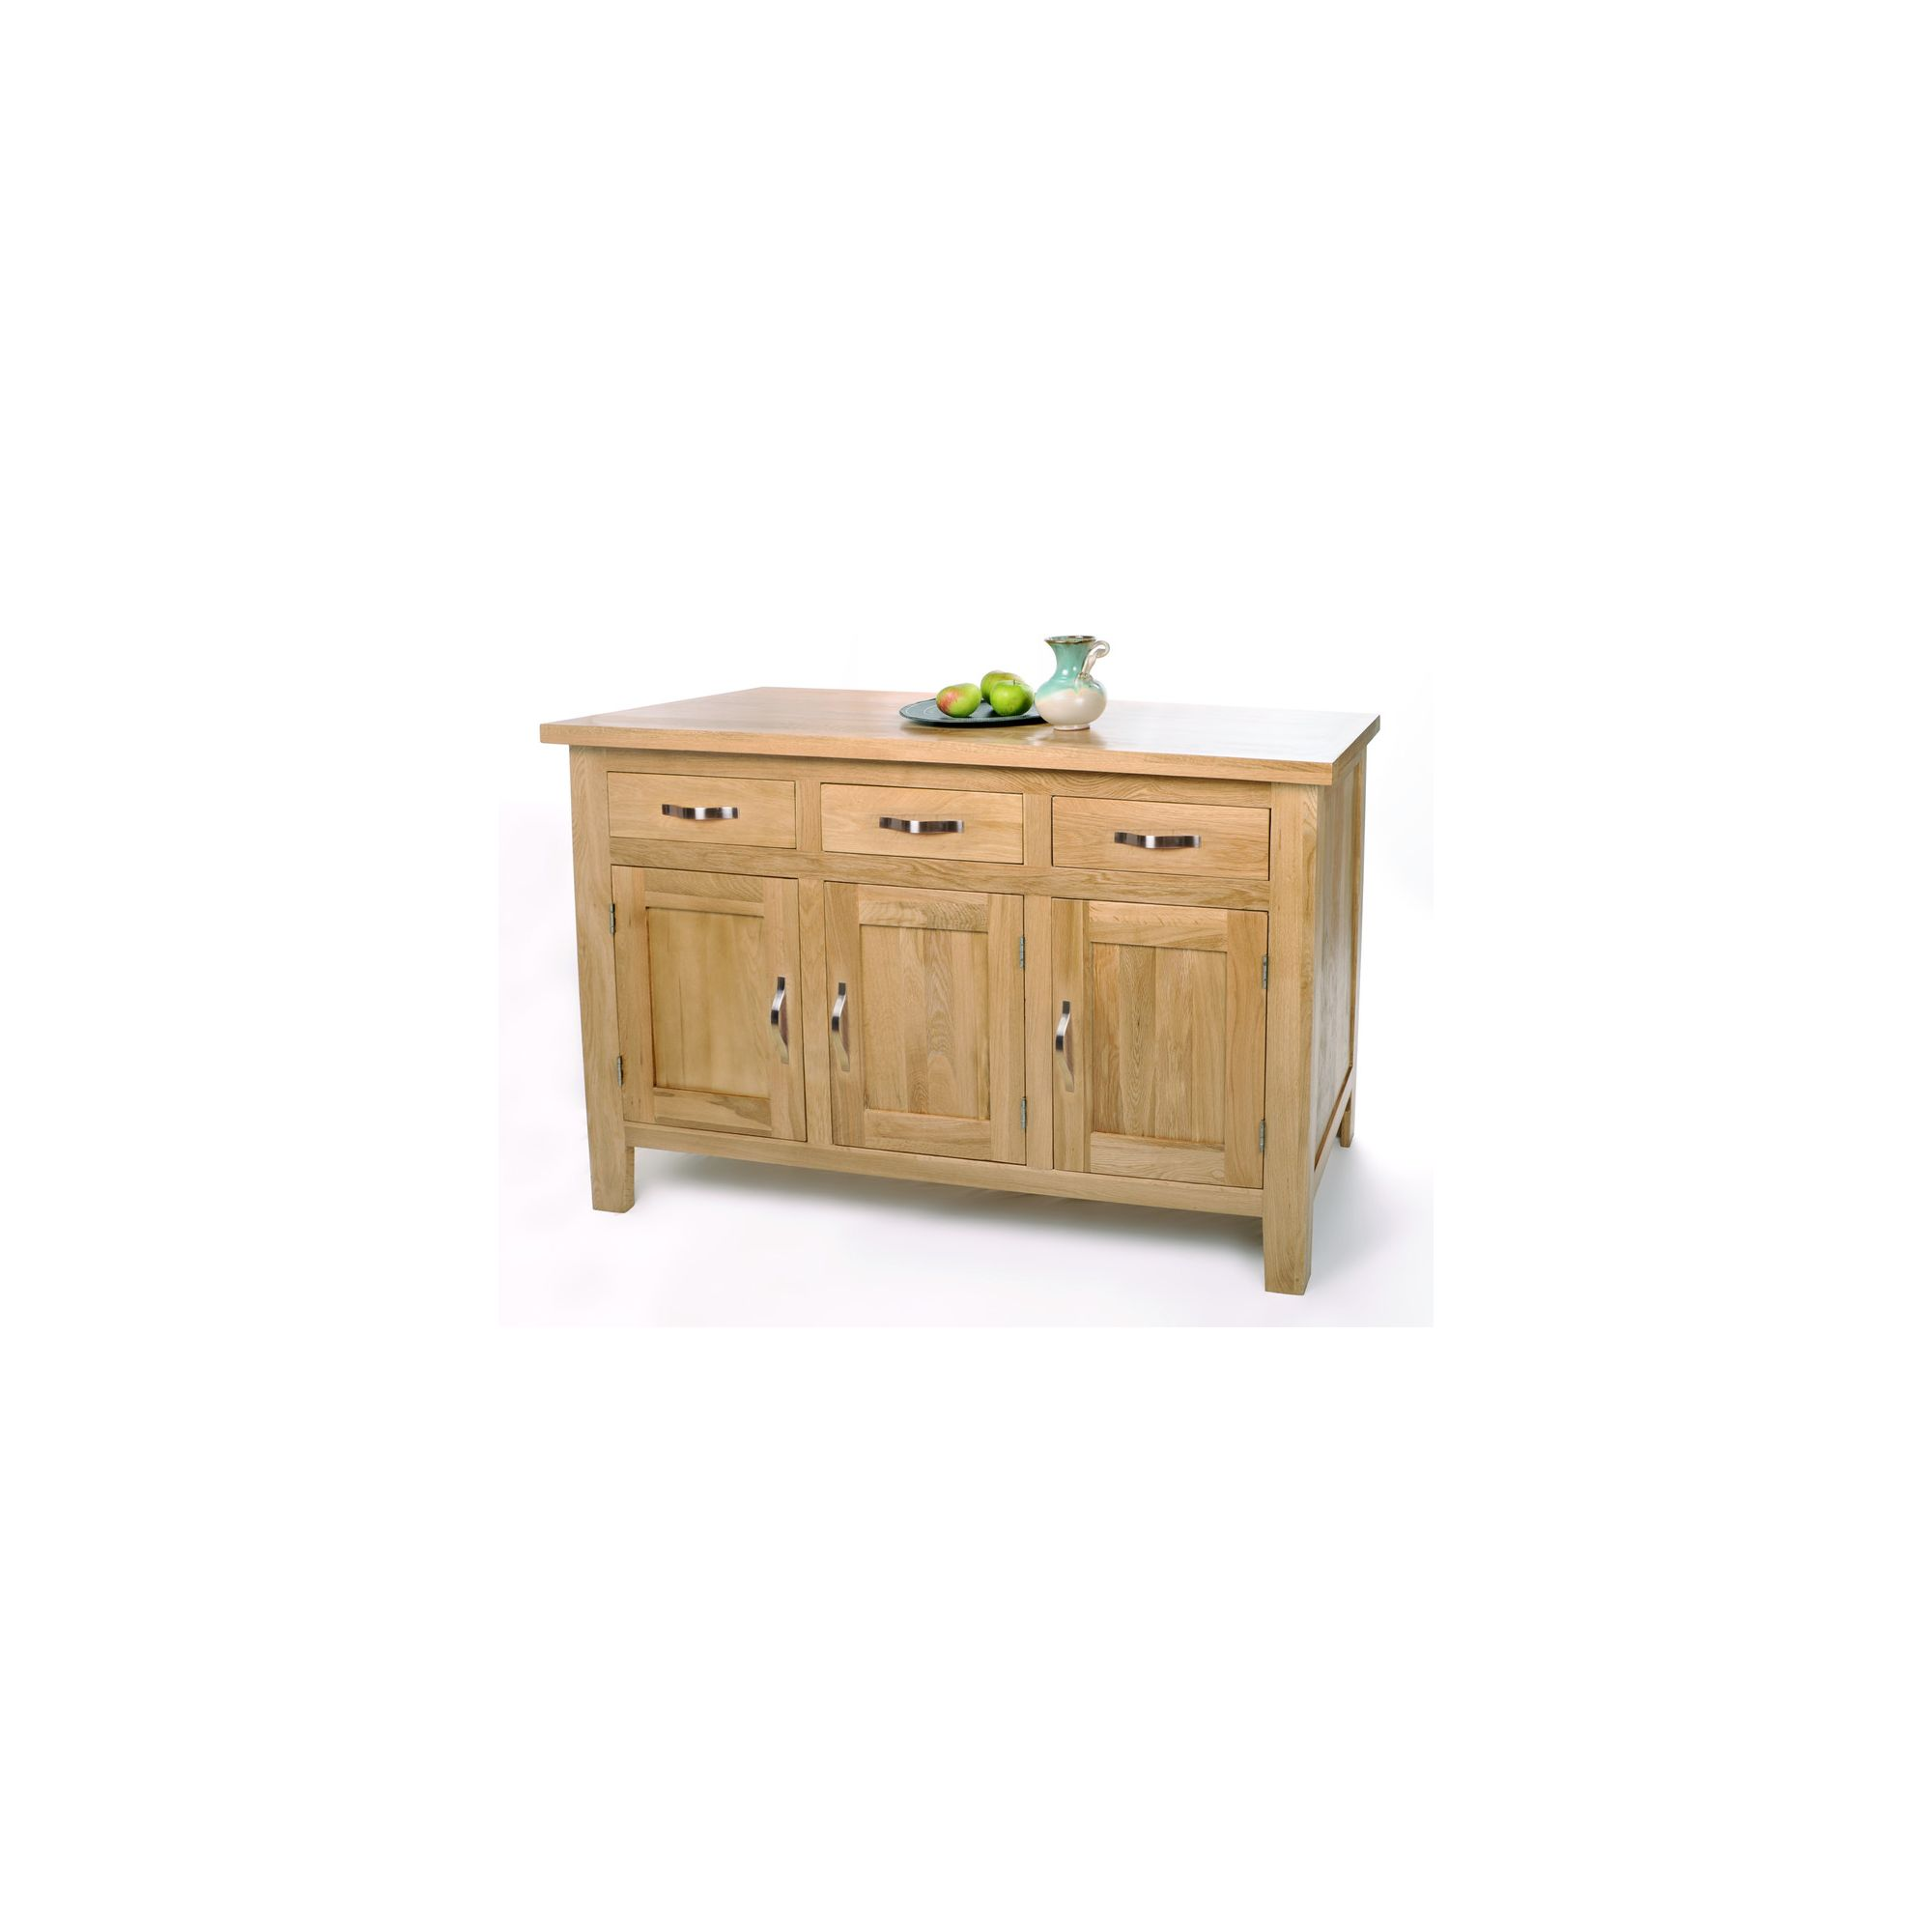 Shankar Enterprises Oaken Extra Large Sideboard at Tescos Direct